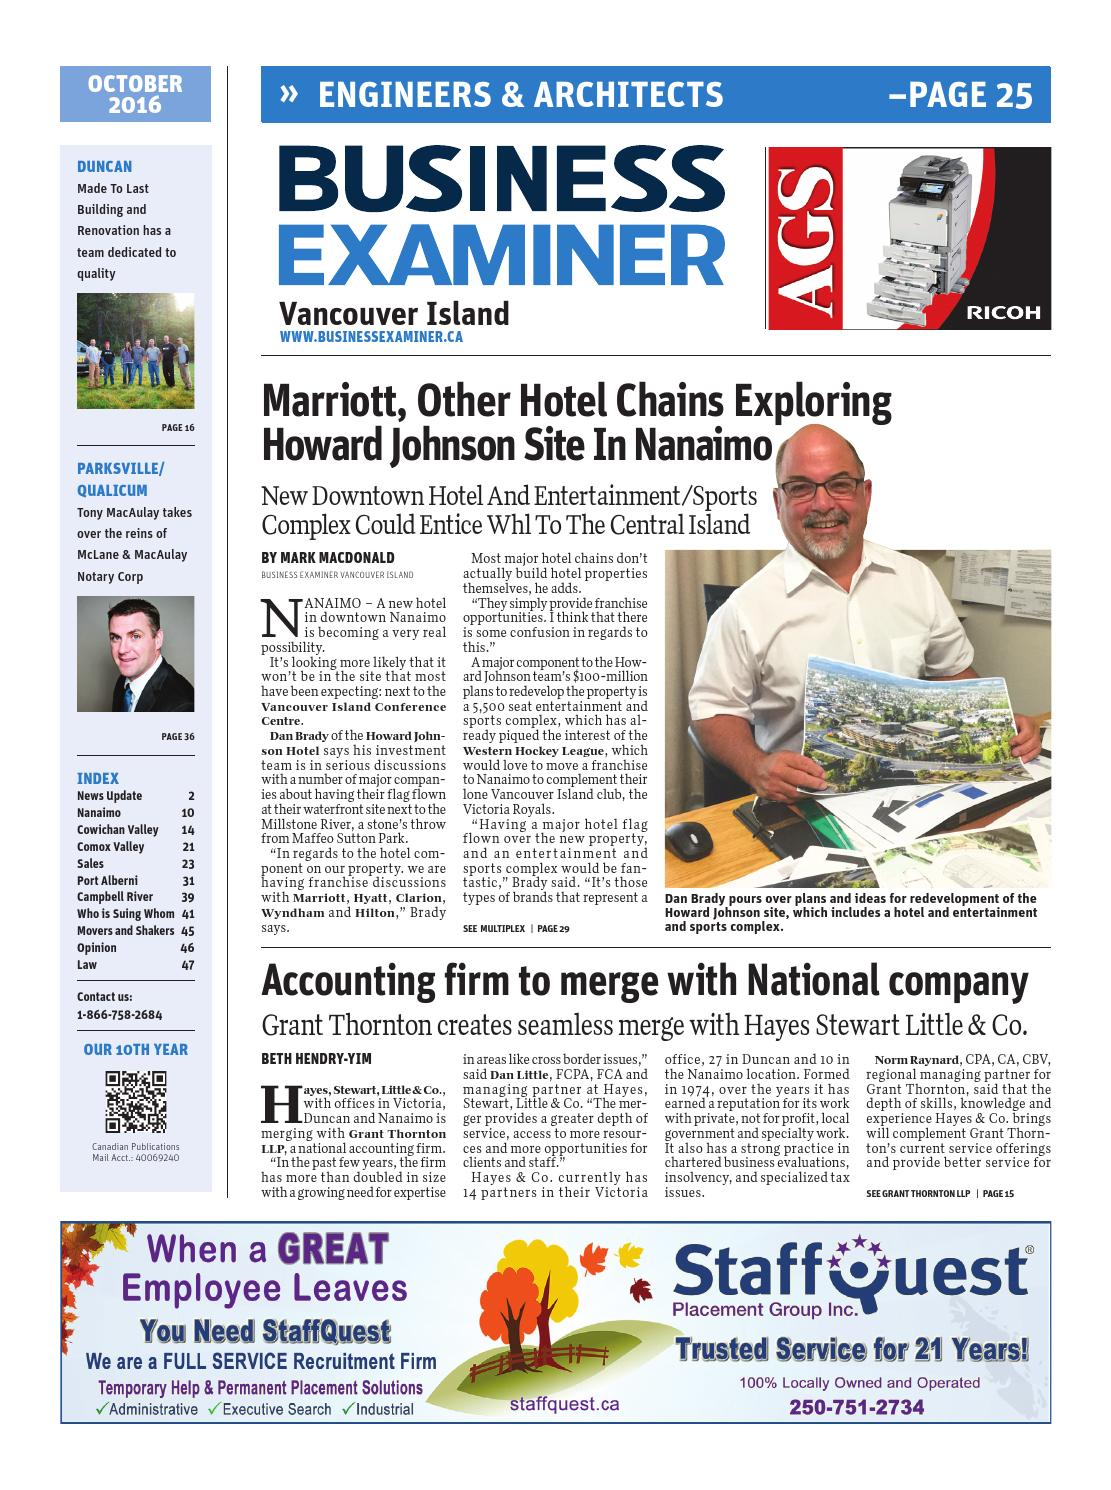 b2465cd180f4 Business Examiner Vancouver Island - October 2016 by Business Examiner  Media Group - issuu